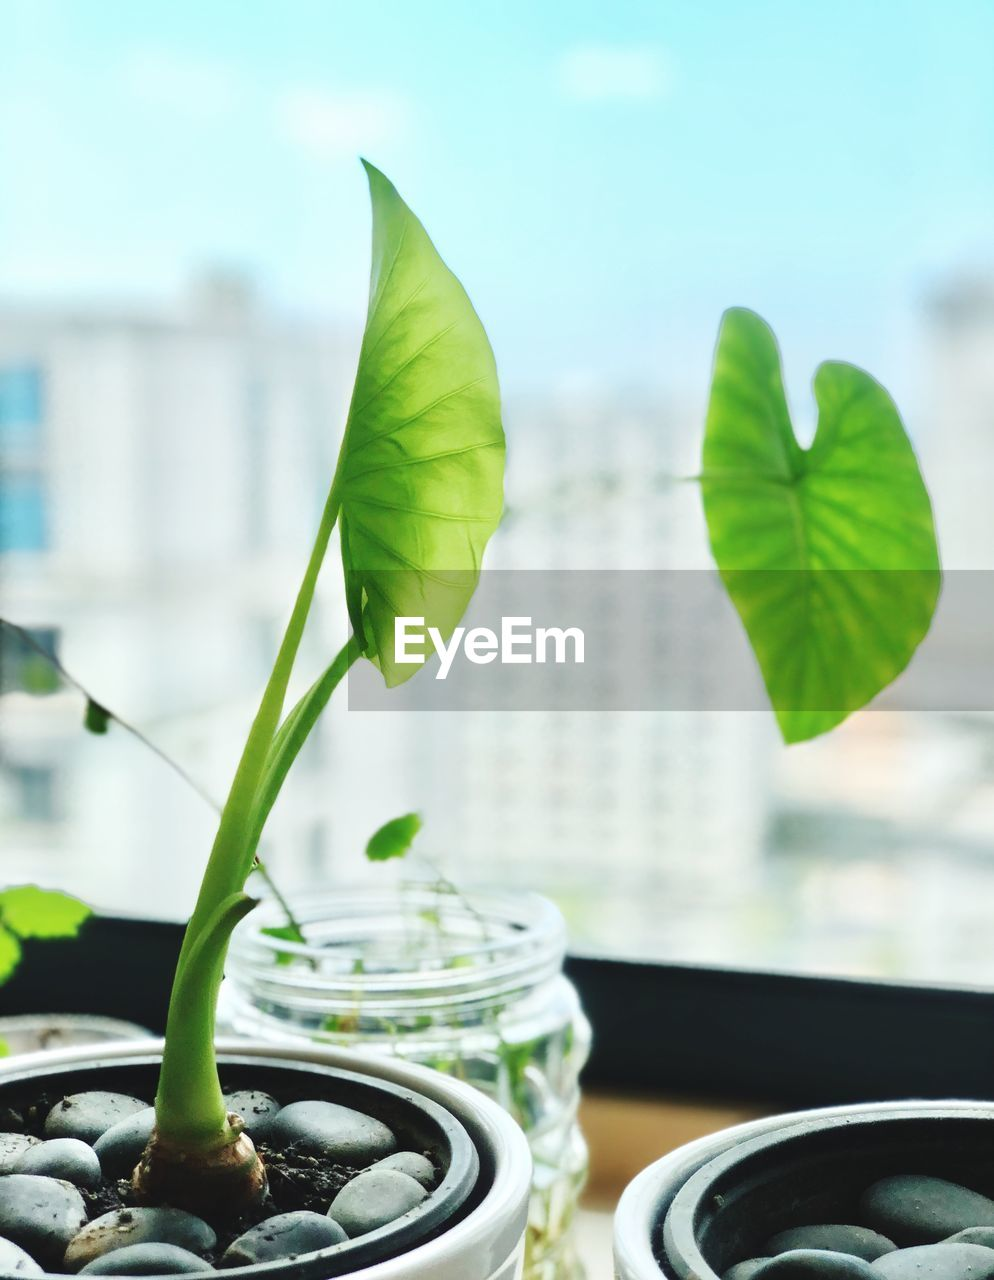 leaf, plant part, close-up, focus on foreground, no people, nature, freshness, green color, plant, still life, indoors, growth, day, food and drink, table, food, selective focus, window, potted plant, leaves